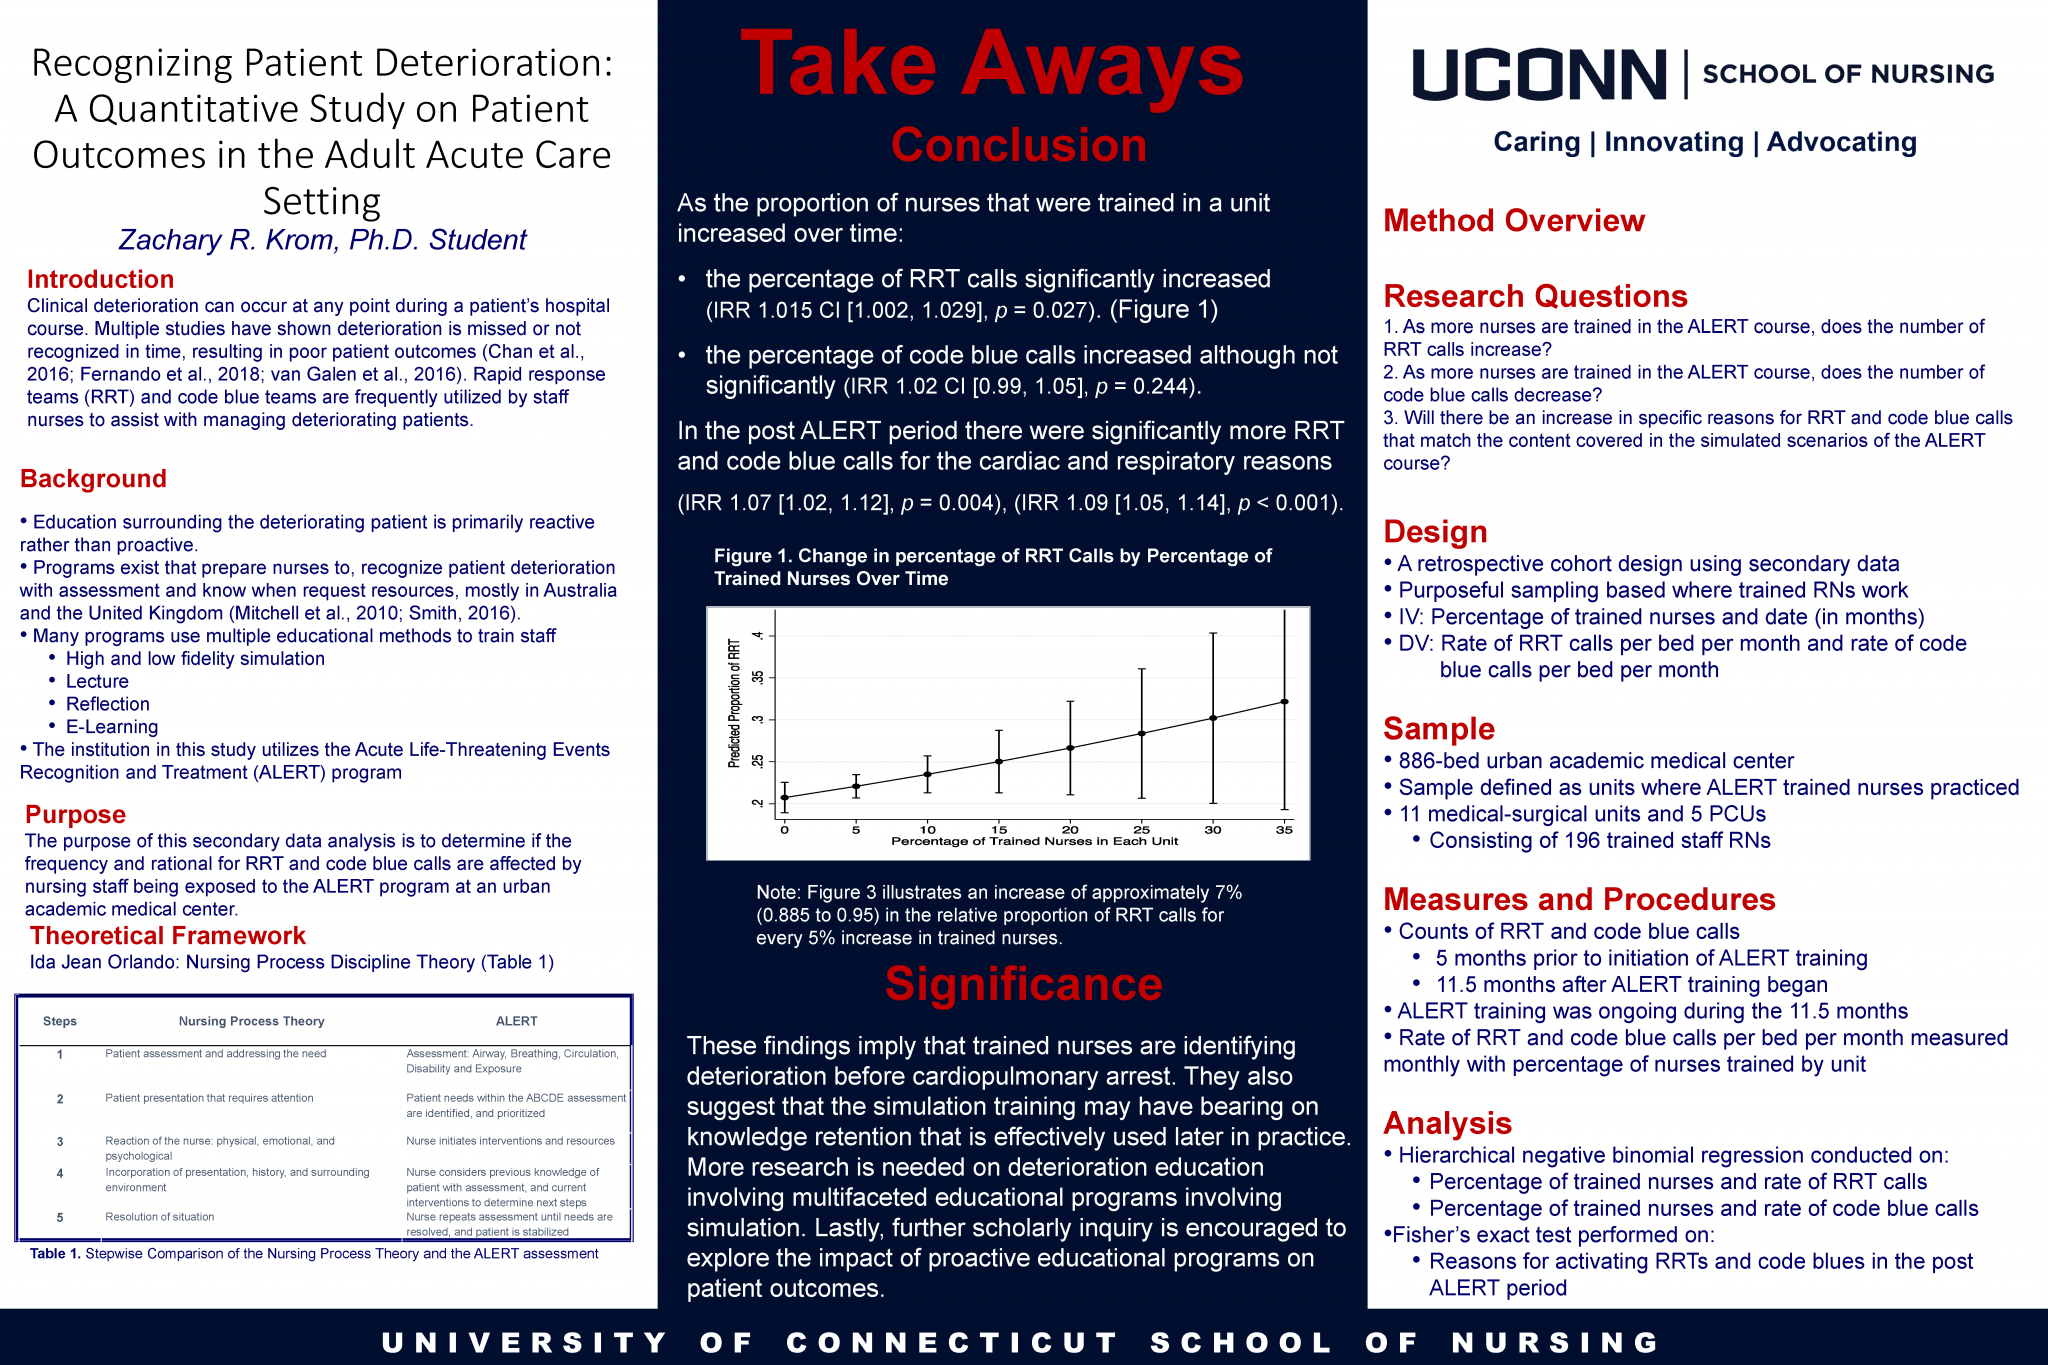 """Zachary Krom Poster Presentation for """"Recognizing Patient Deterioration: A Quantitative Study on Patient Outcomes in the Adult Acute Care Setting"""""""